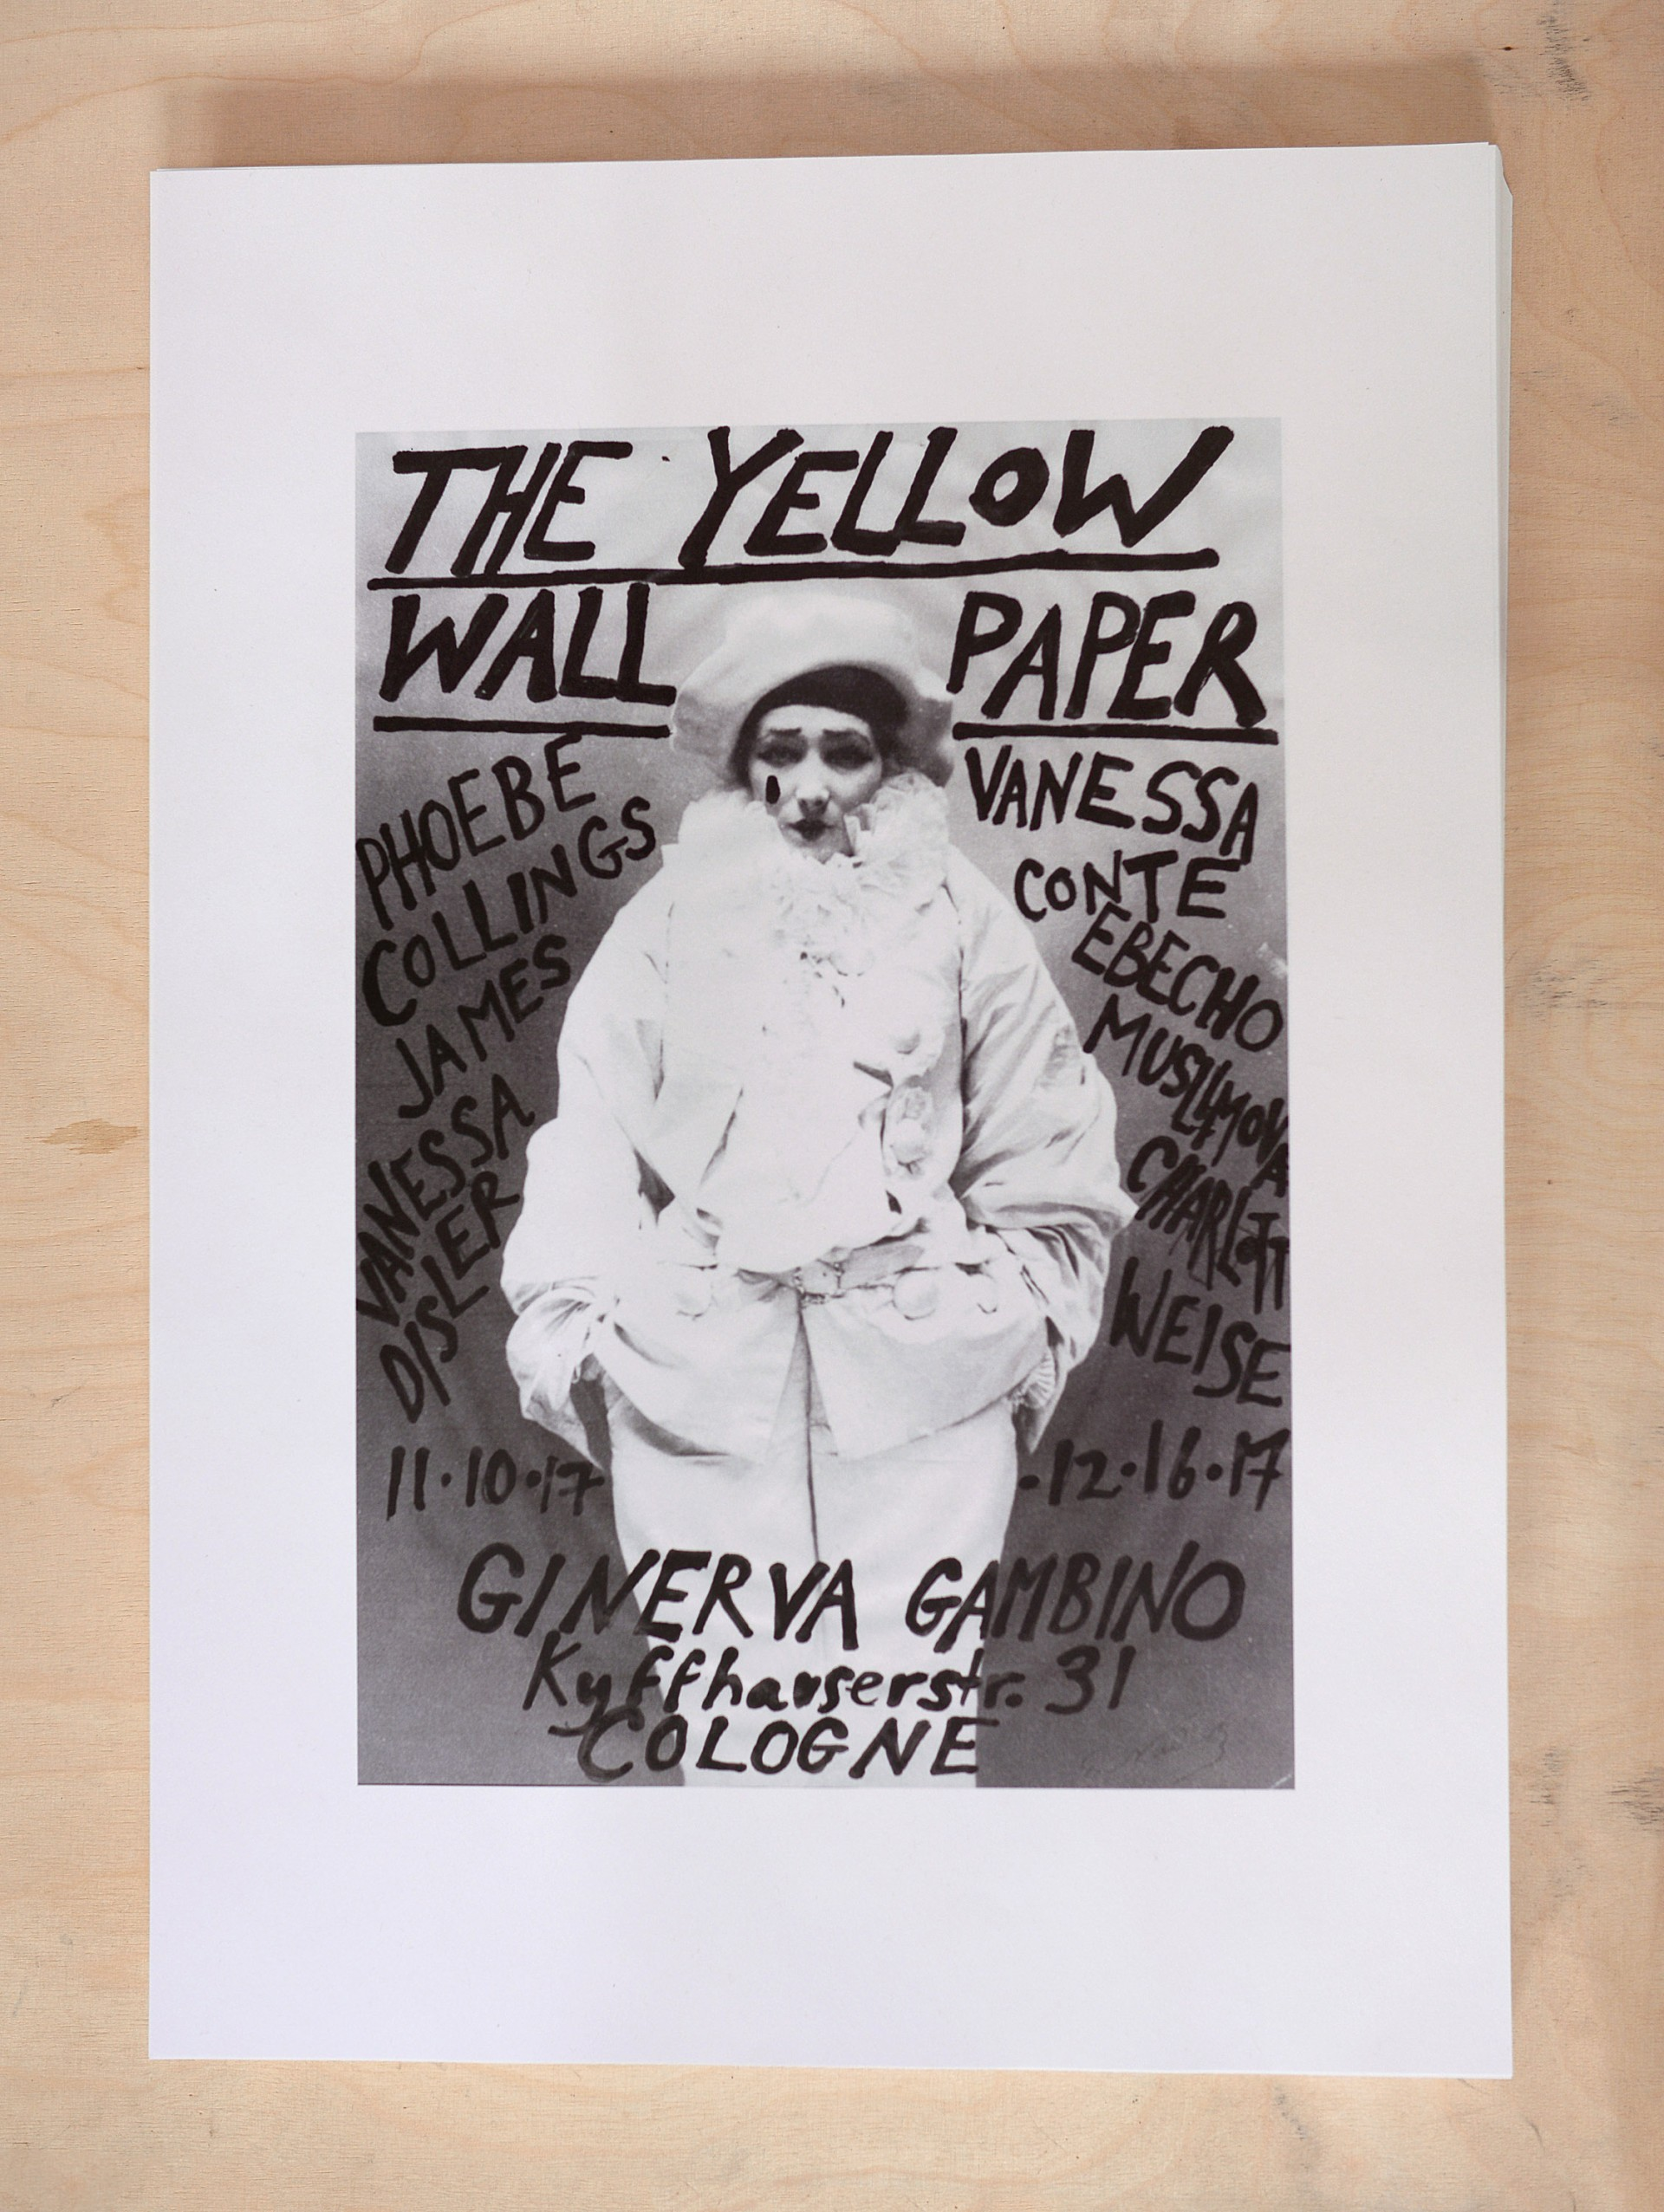 Ginerva Gambino The Yellow Wallpaper